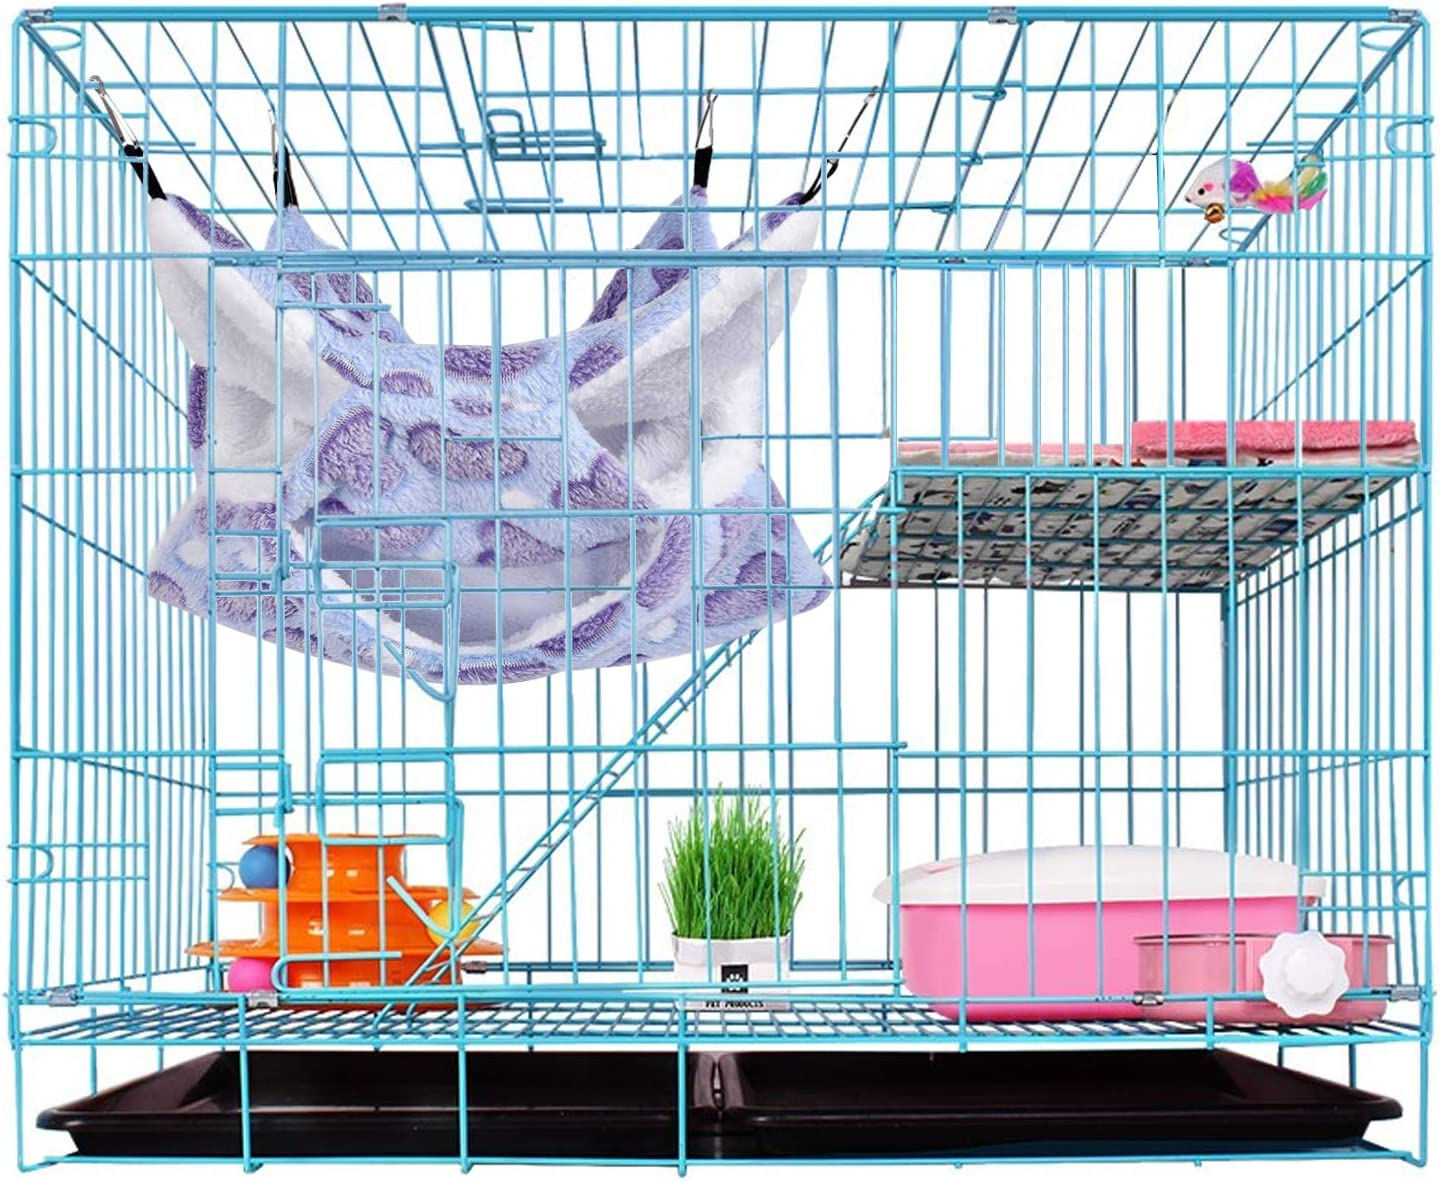 Petmolico Small Pet Cage Hammock Warm Plush Triple BunkBed Hanging Hammock Bed Cage Accessories for Parrot Sugar Glider Ferret Squirrel Hamster Rat Bedding Hideout Playing Sleeping